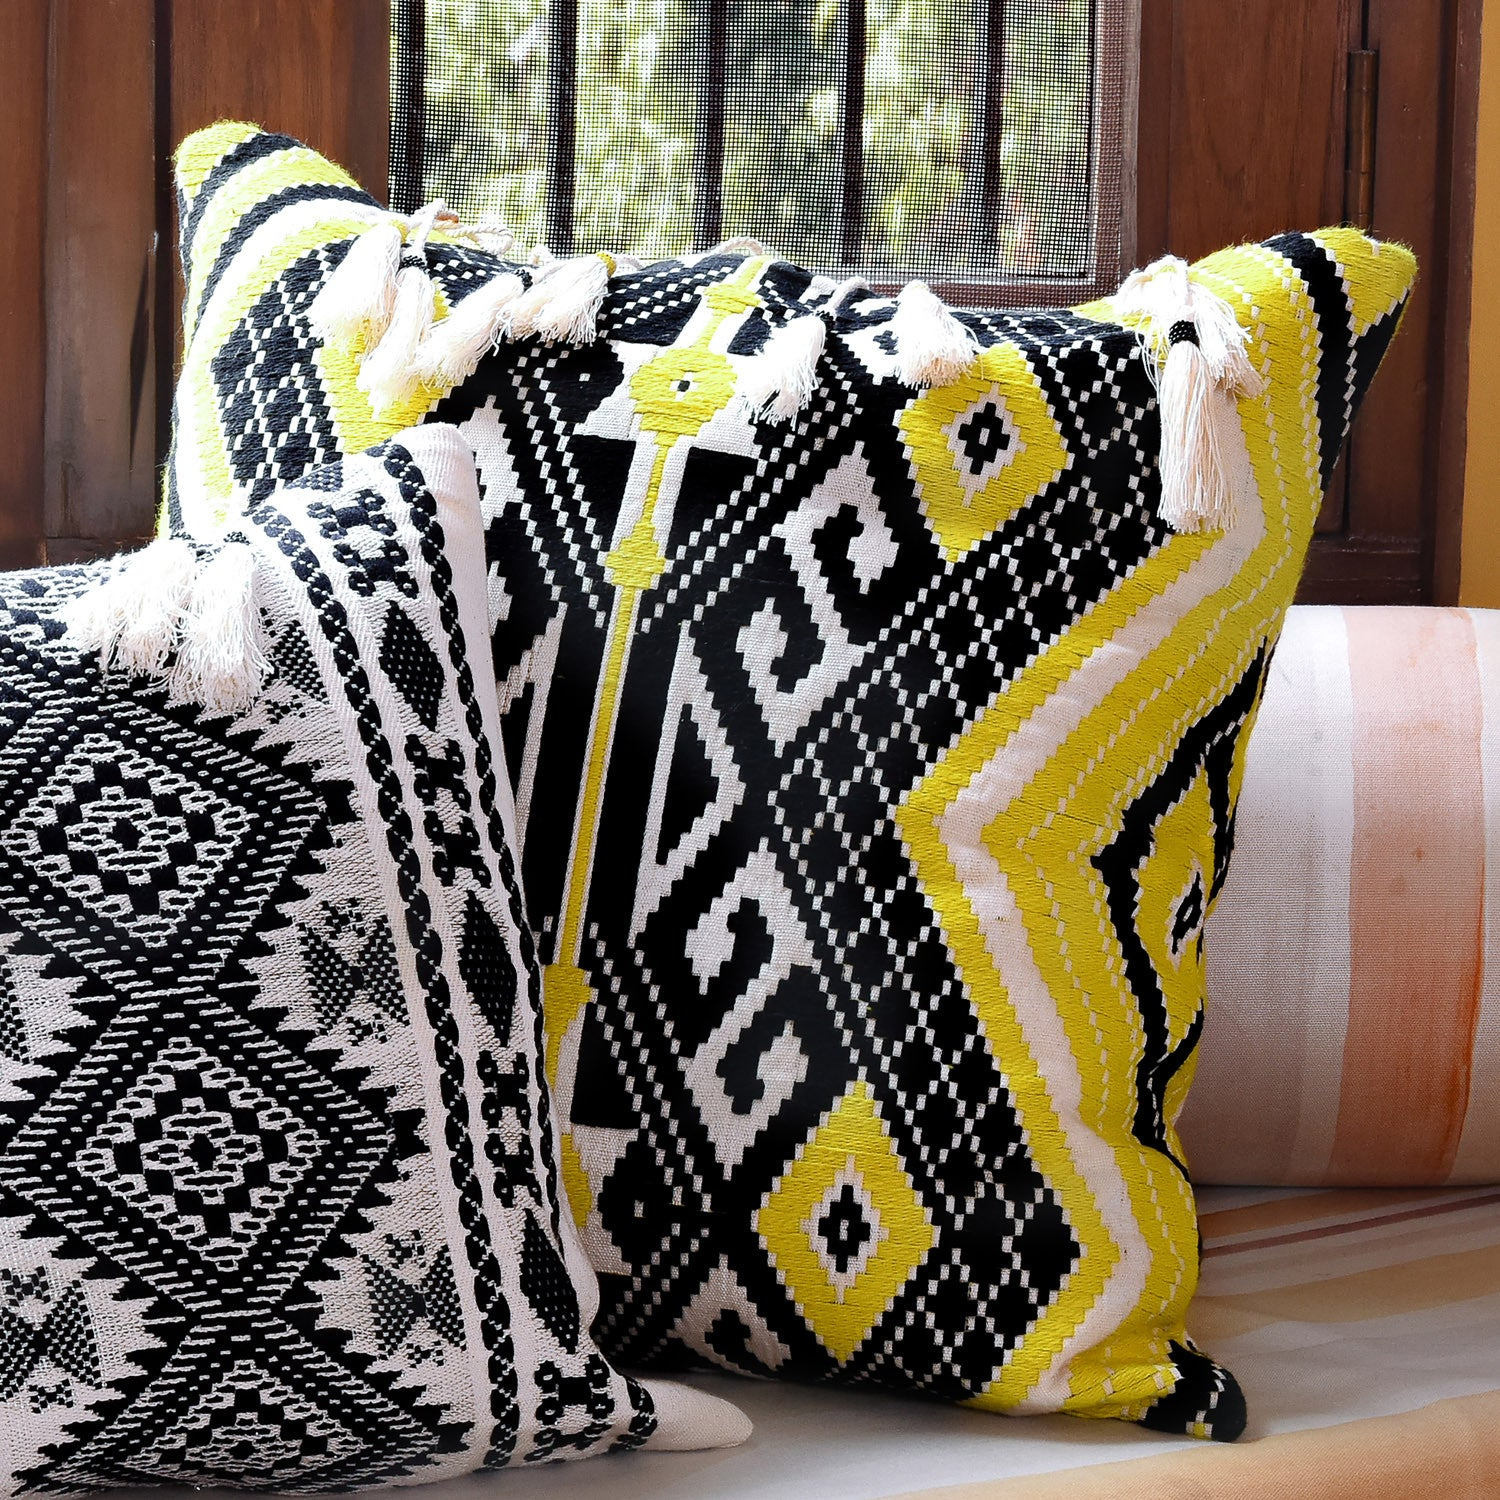 Bedouin-style yellow, black & white tasselled cotton cushion - Bivain - 3